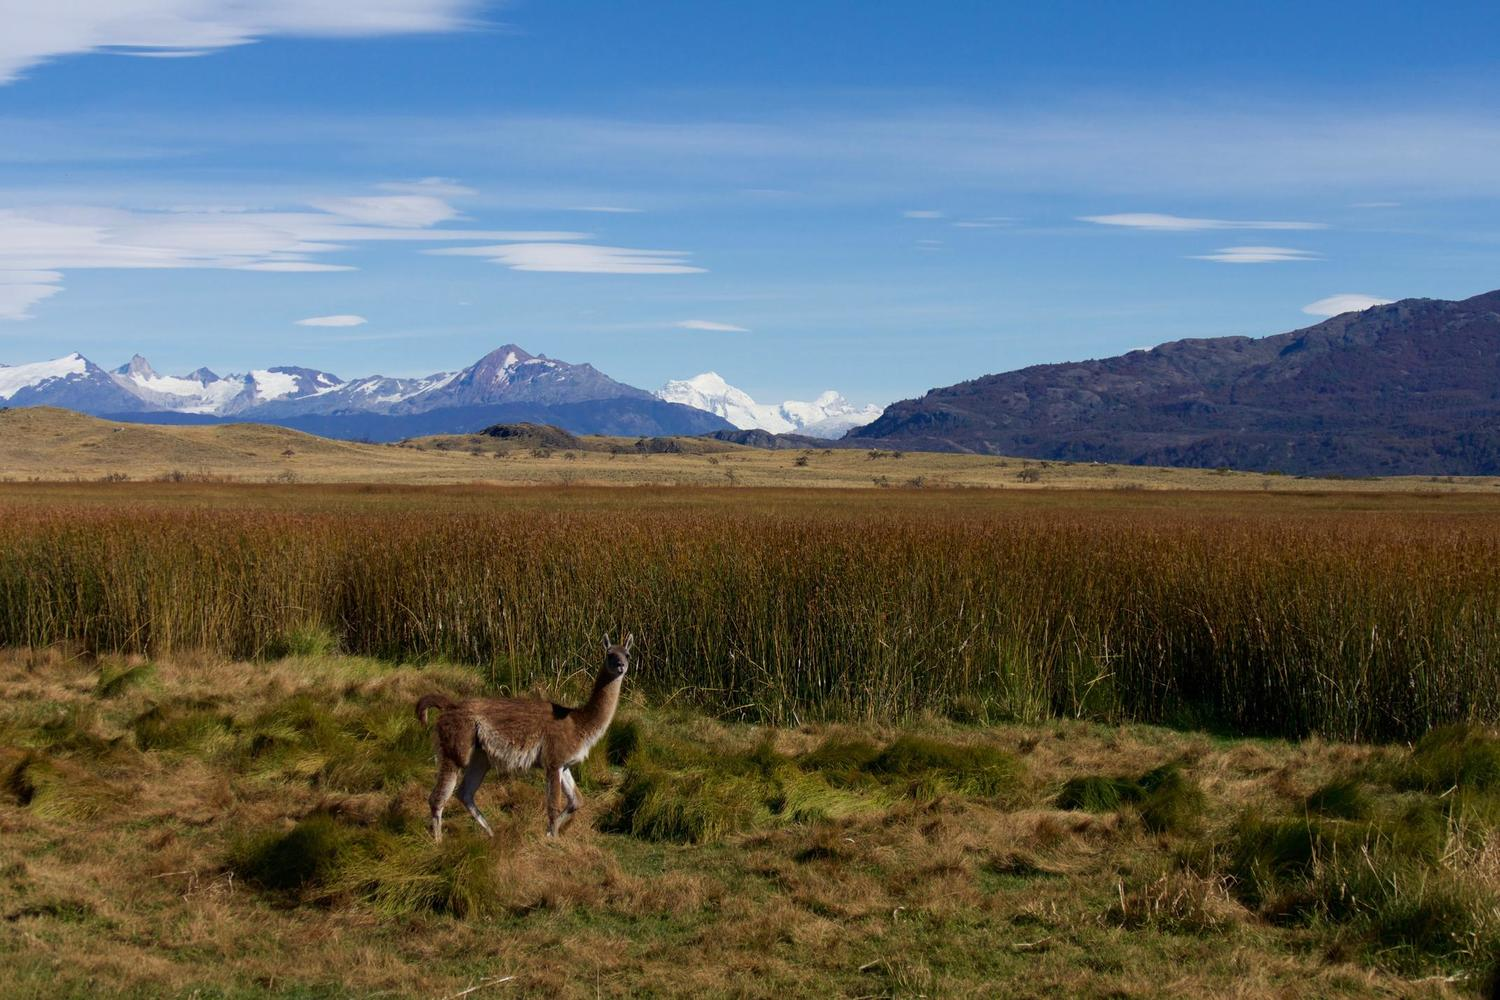 Guanaco grazing in the Parque Patagonia